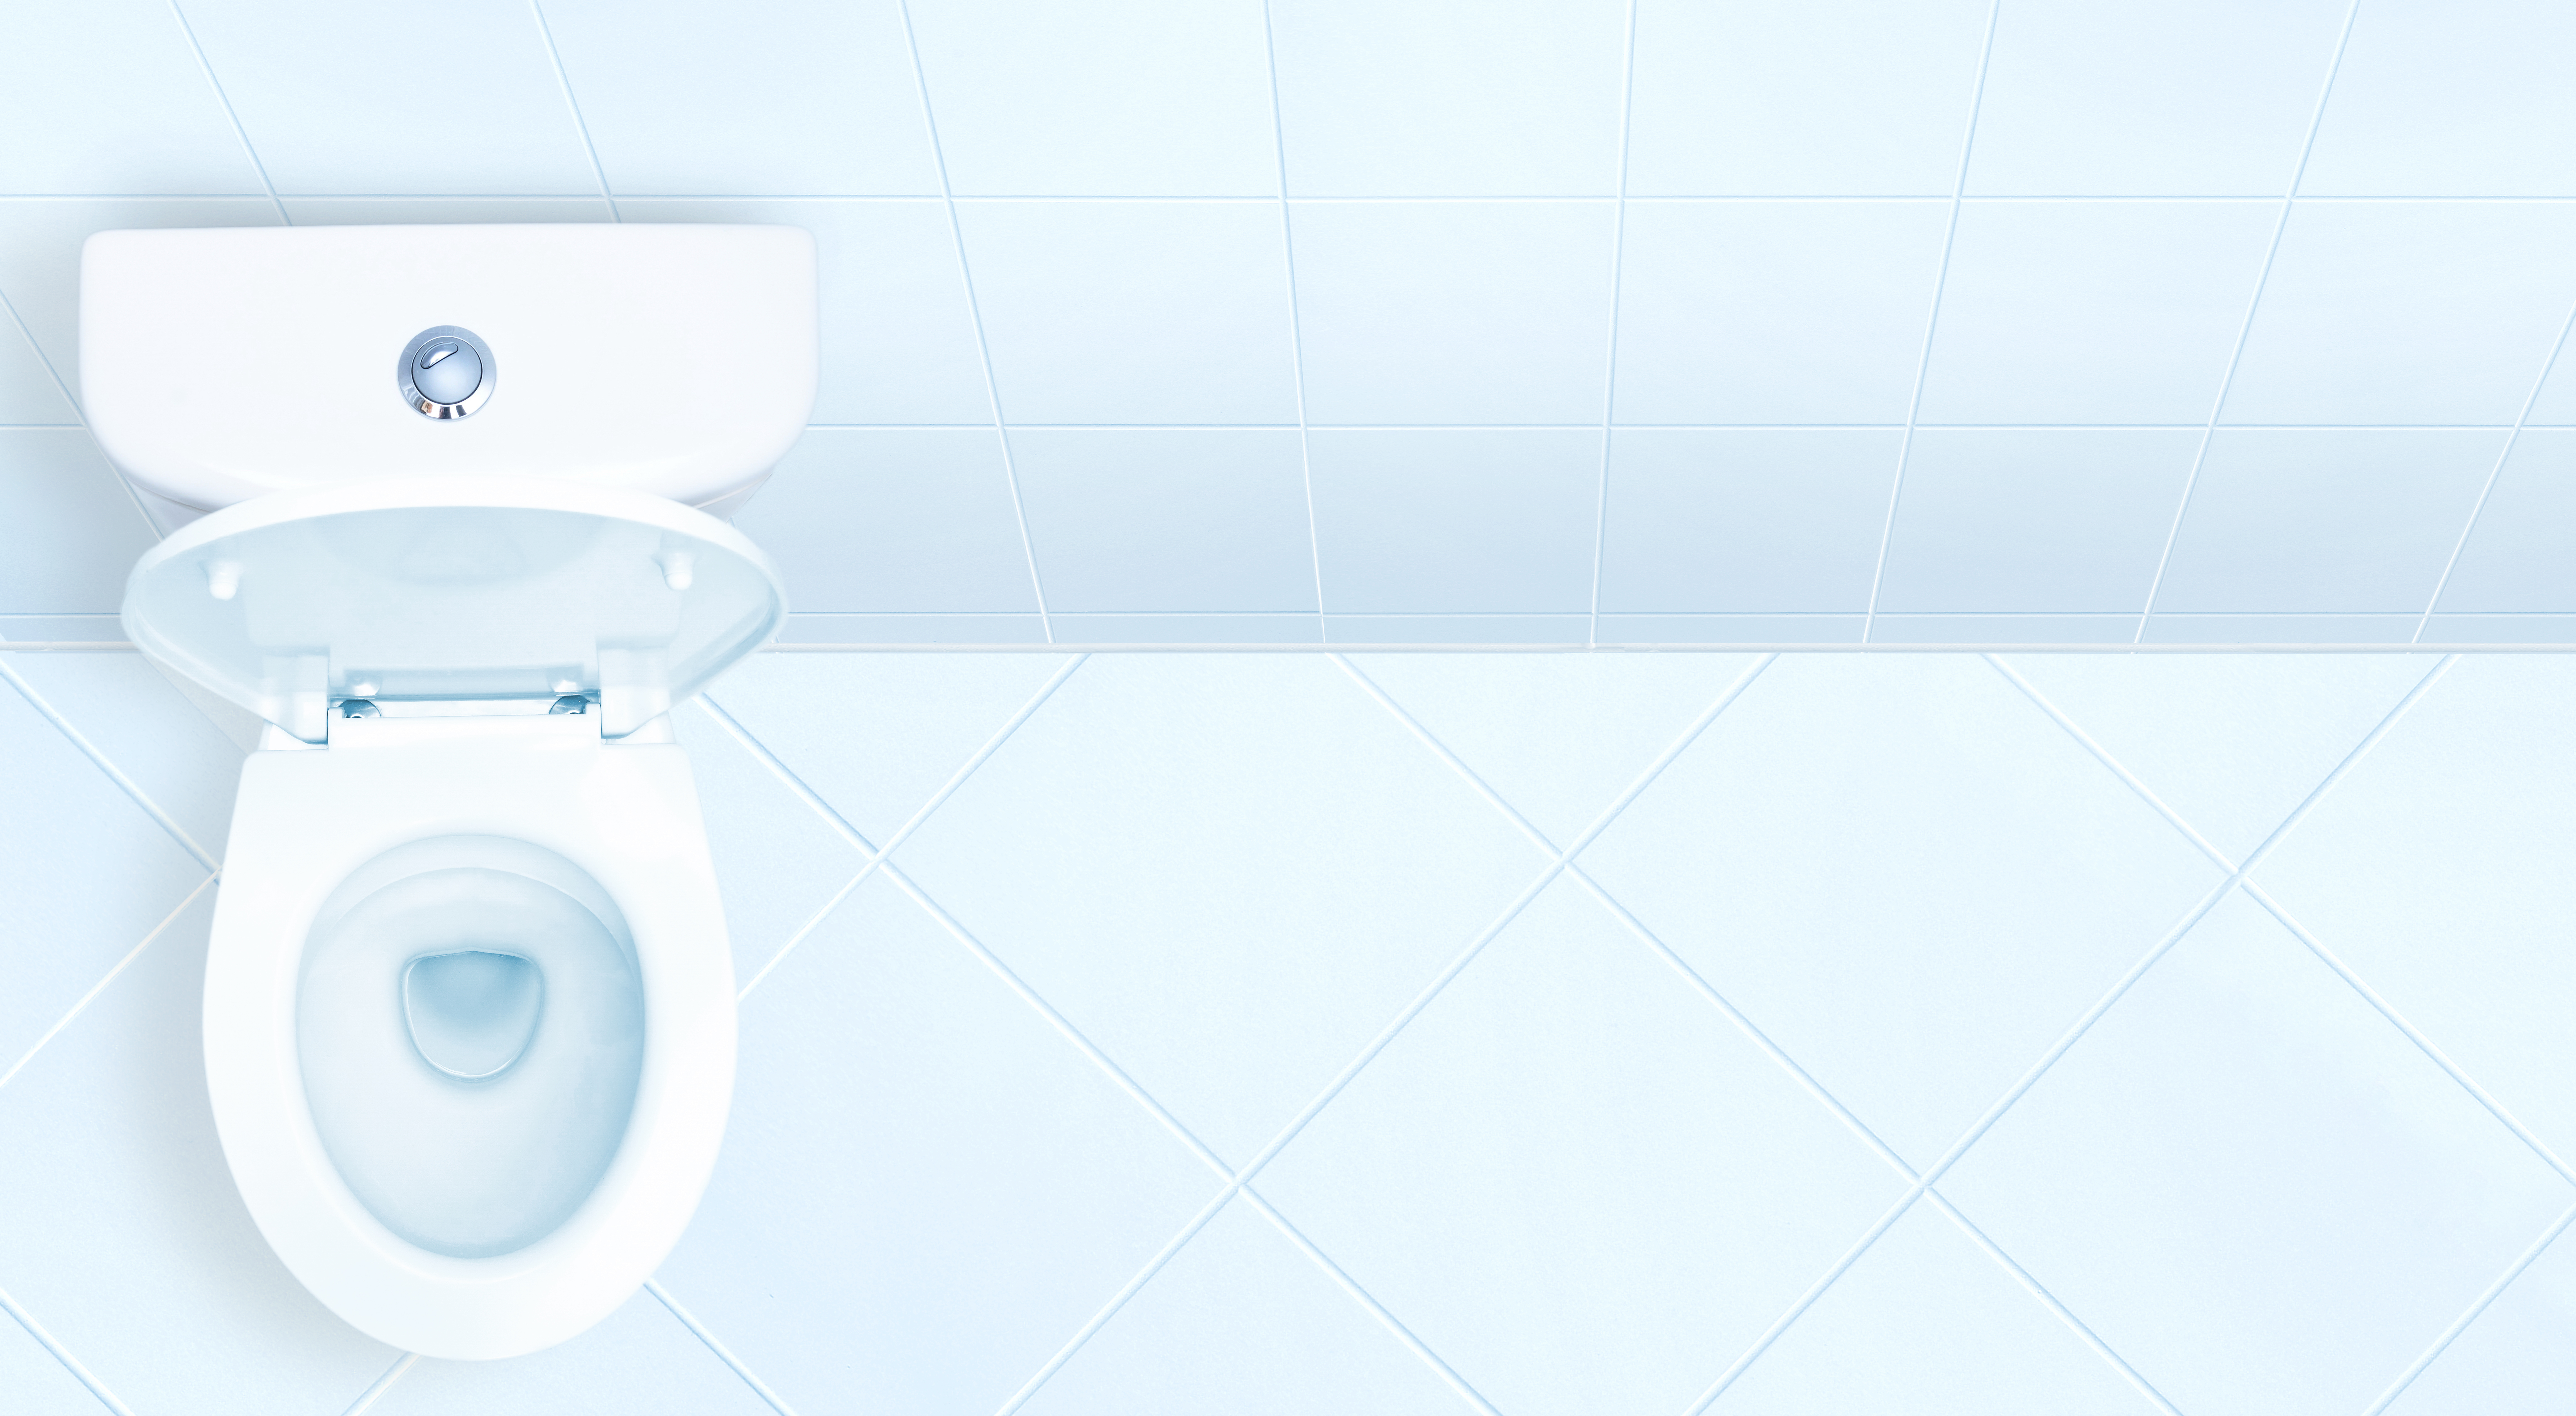 How to Replace Cracked Toilet Tanks | Home Guides | SF Gate